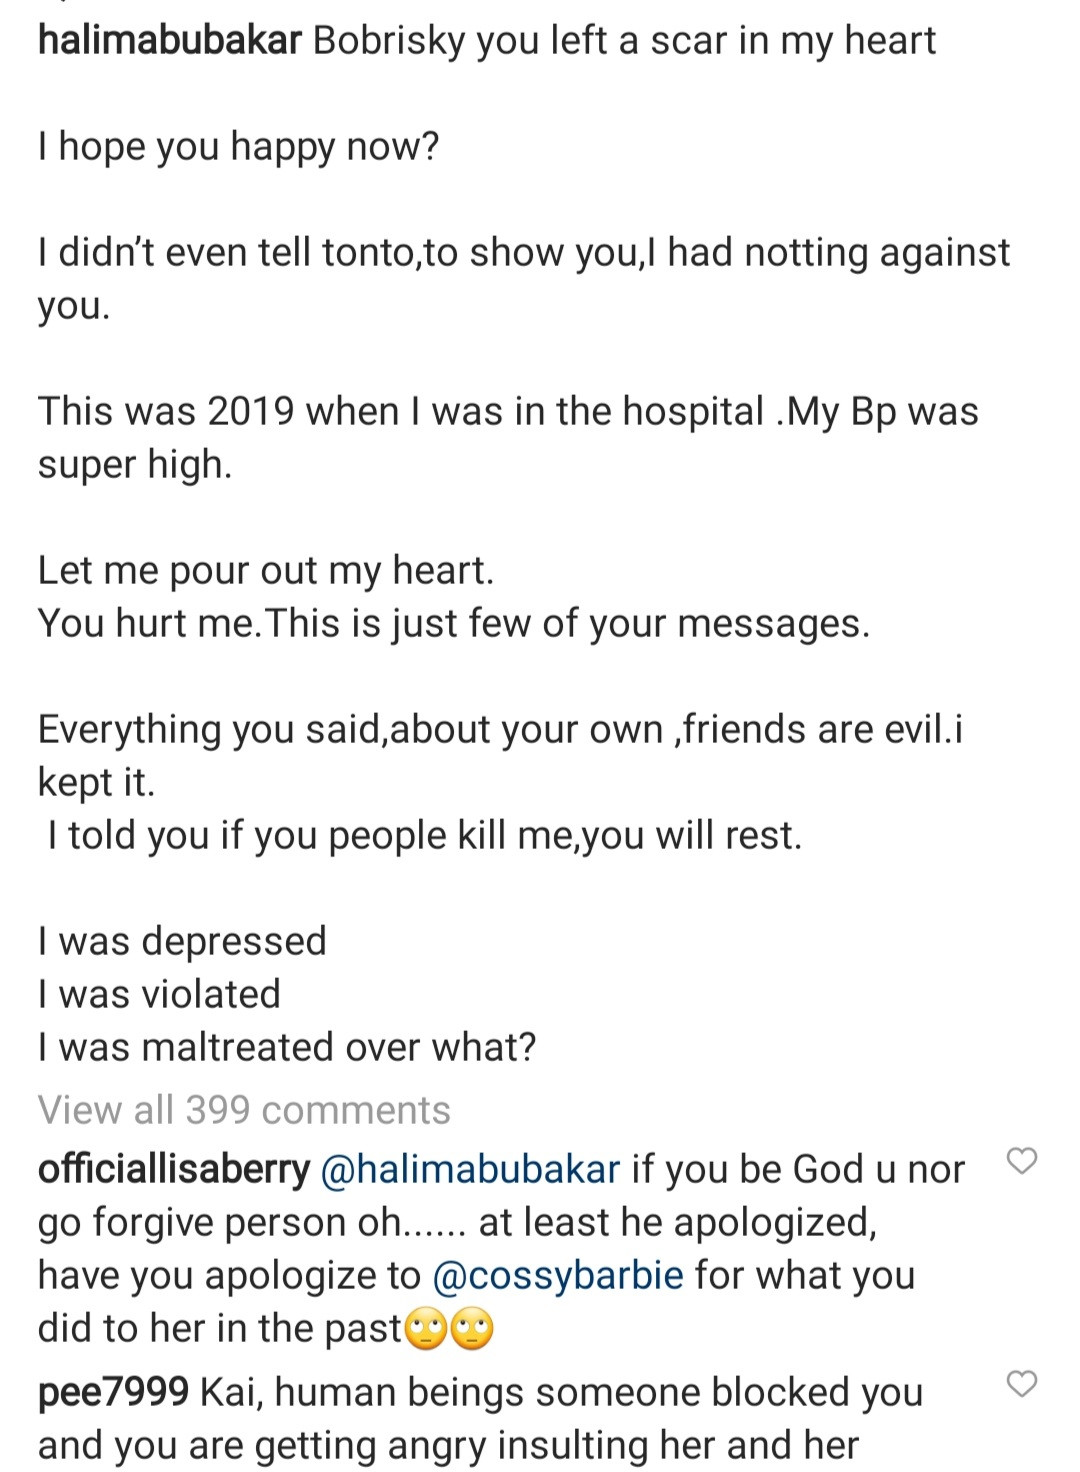 Actress, Halima Abubakar starts spilling; shares heated chats between herself and Bobrisky as she accuses the crossdresser of leaving a scar in her heart